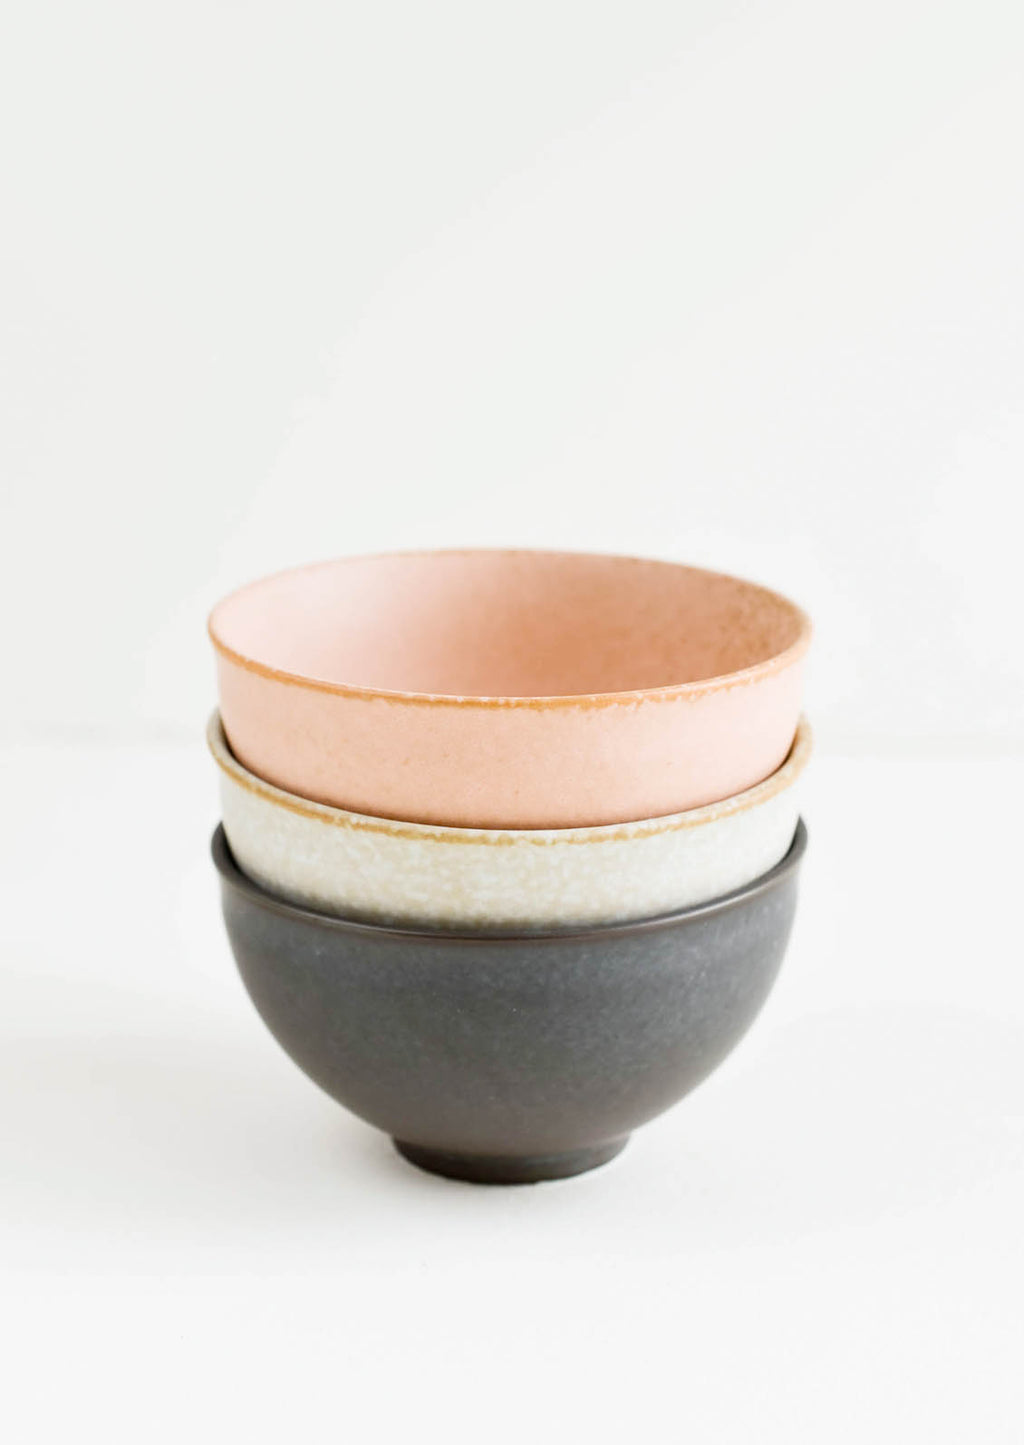 Stargaze Ceramic Bowl